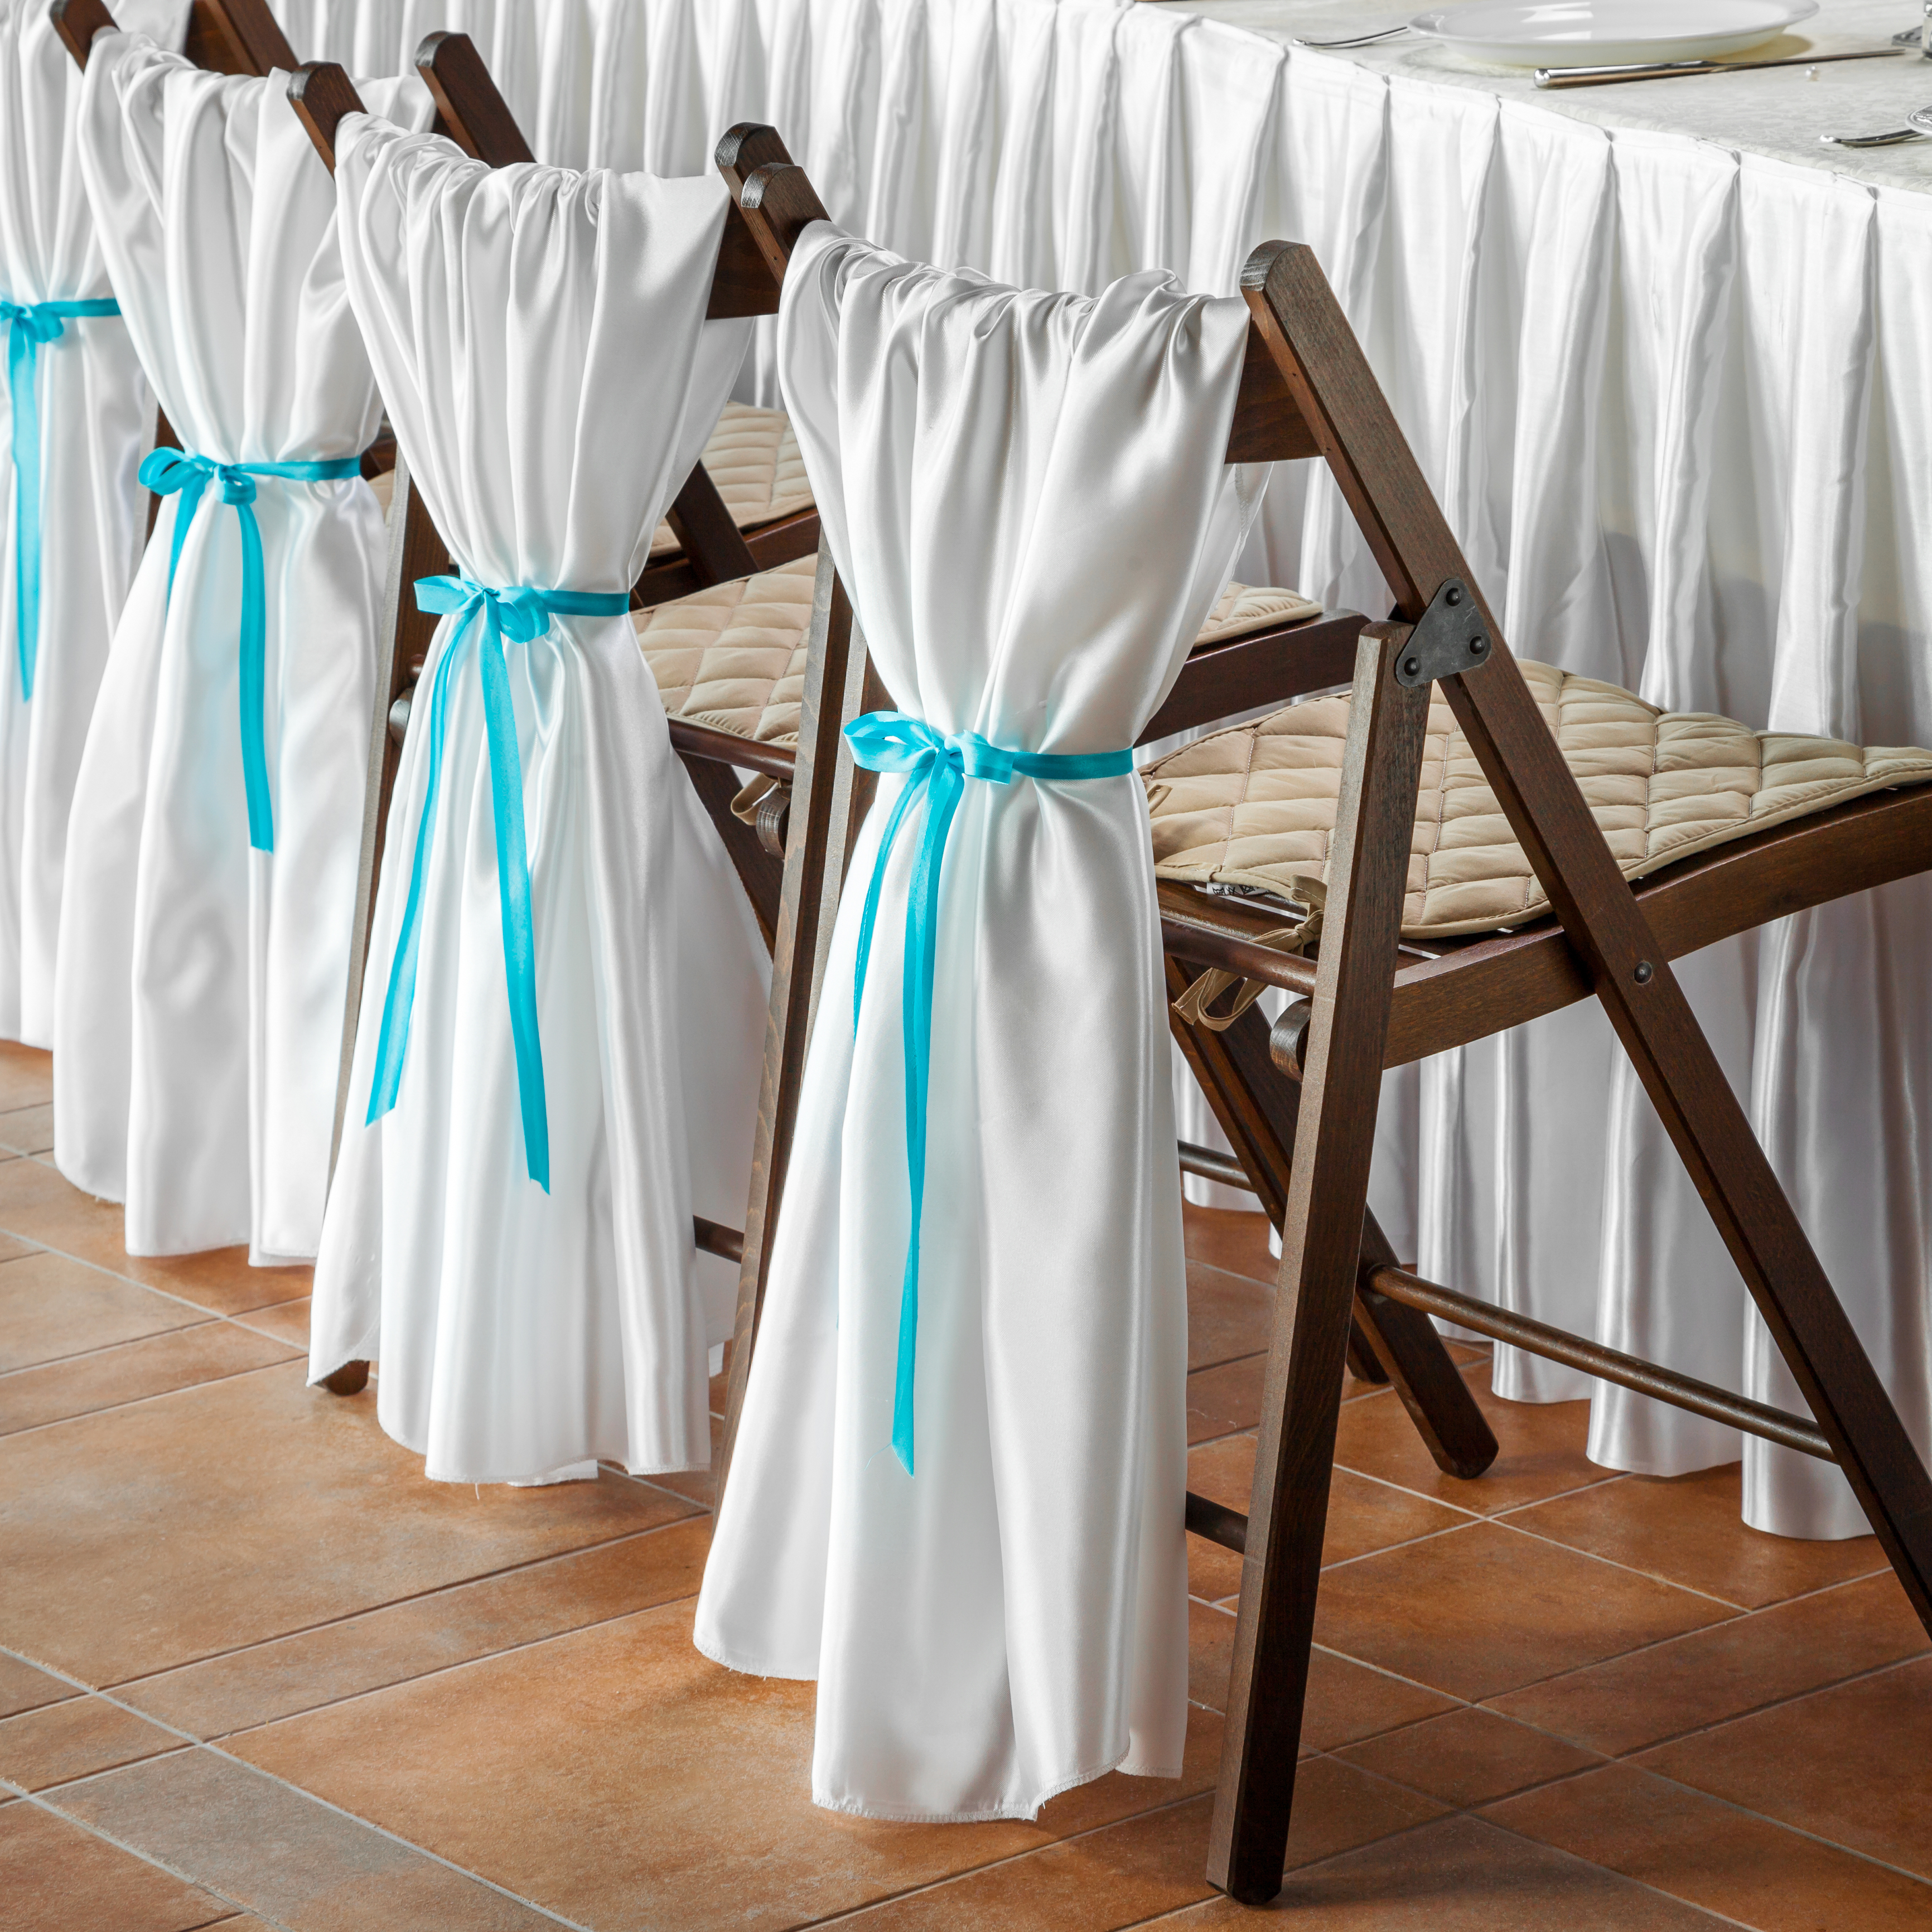 Row Of Wedding Chairs, Decorated With White Fabric And Blue Ribbons.